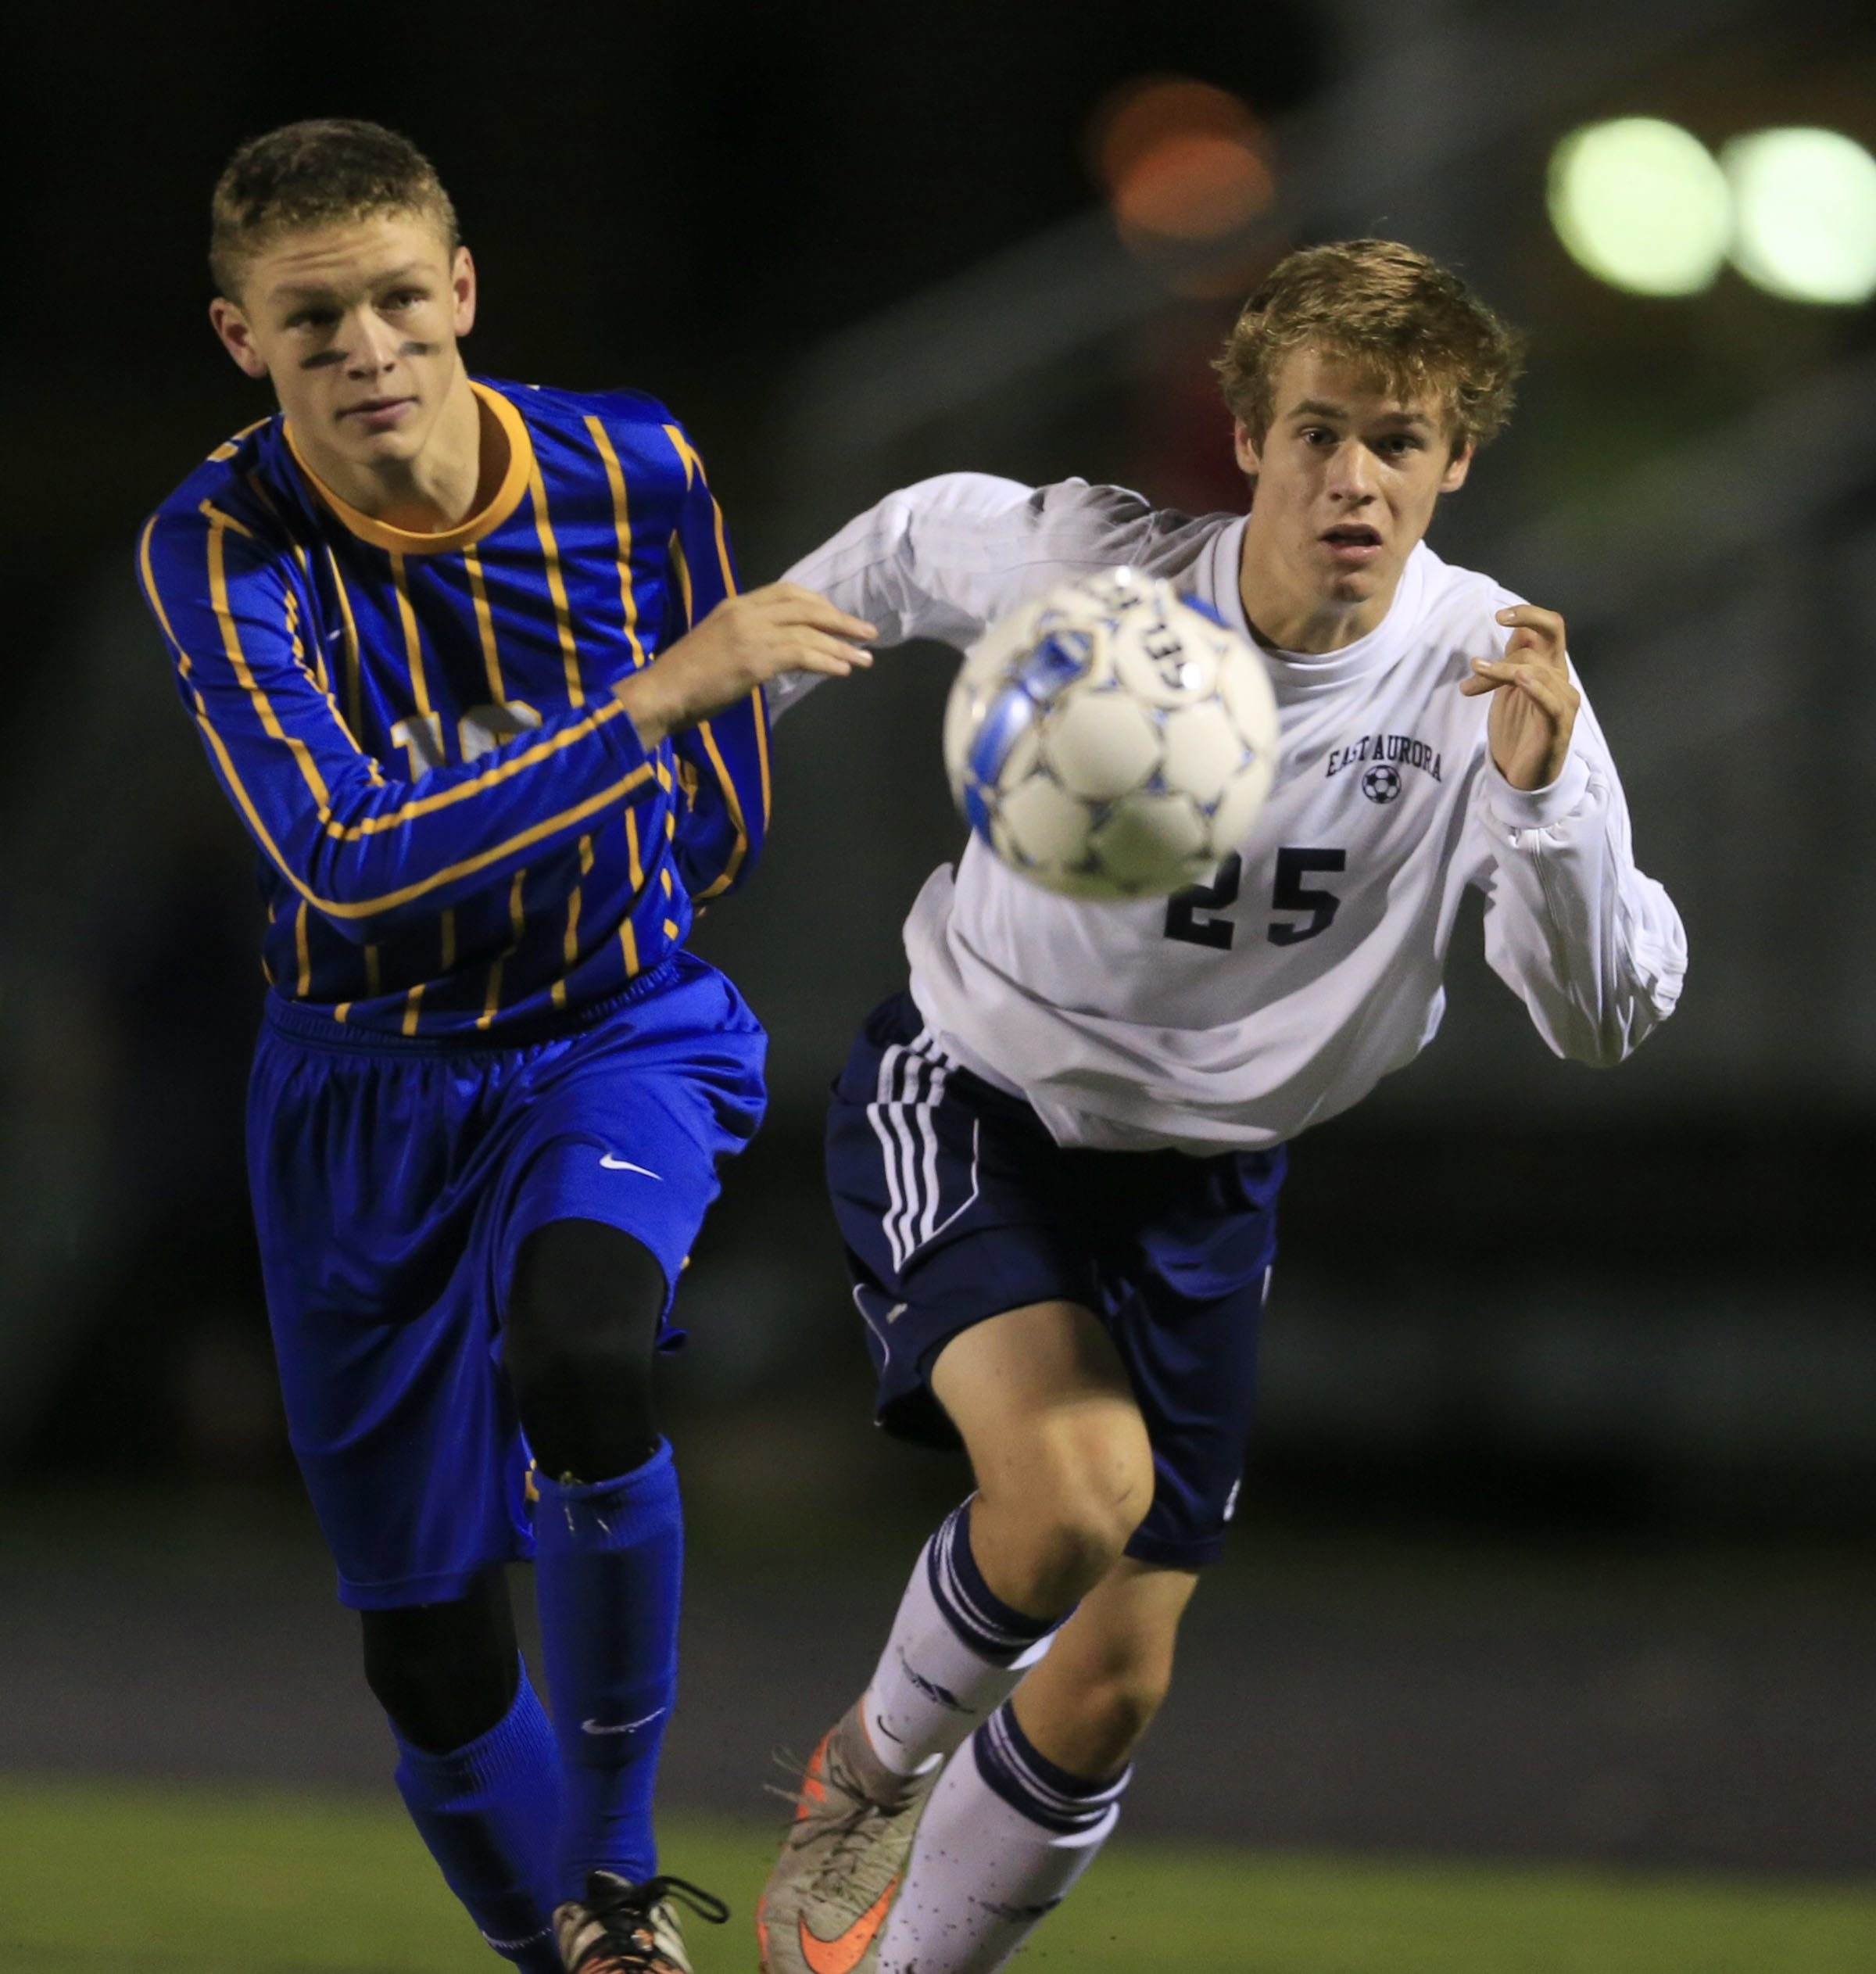 East Aurora's Alex Baase, right, and Alden's Owne Kissell chase a loose ball during the Blue Devils' 5-1 win.